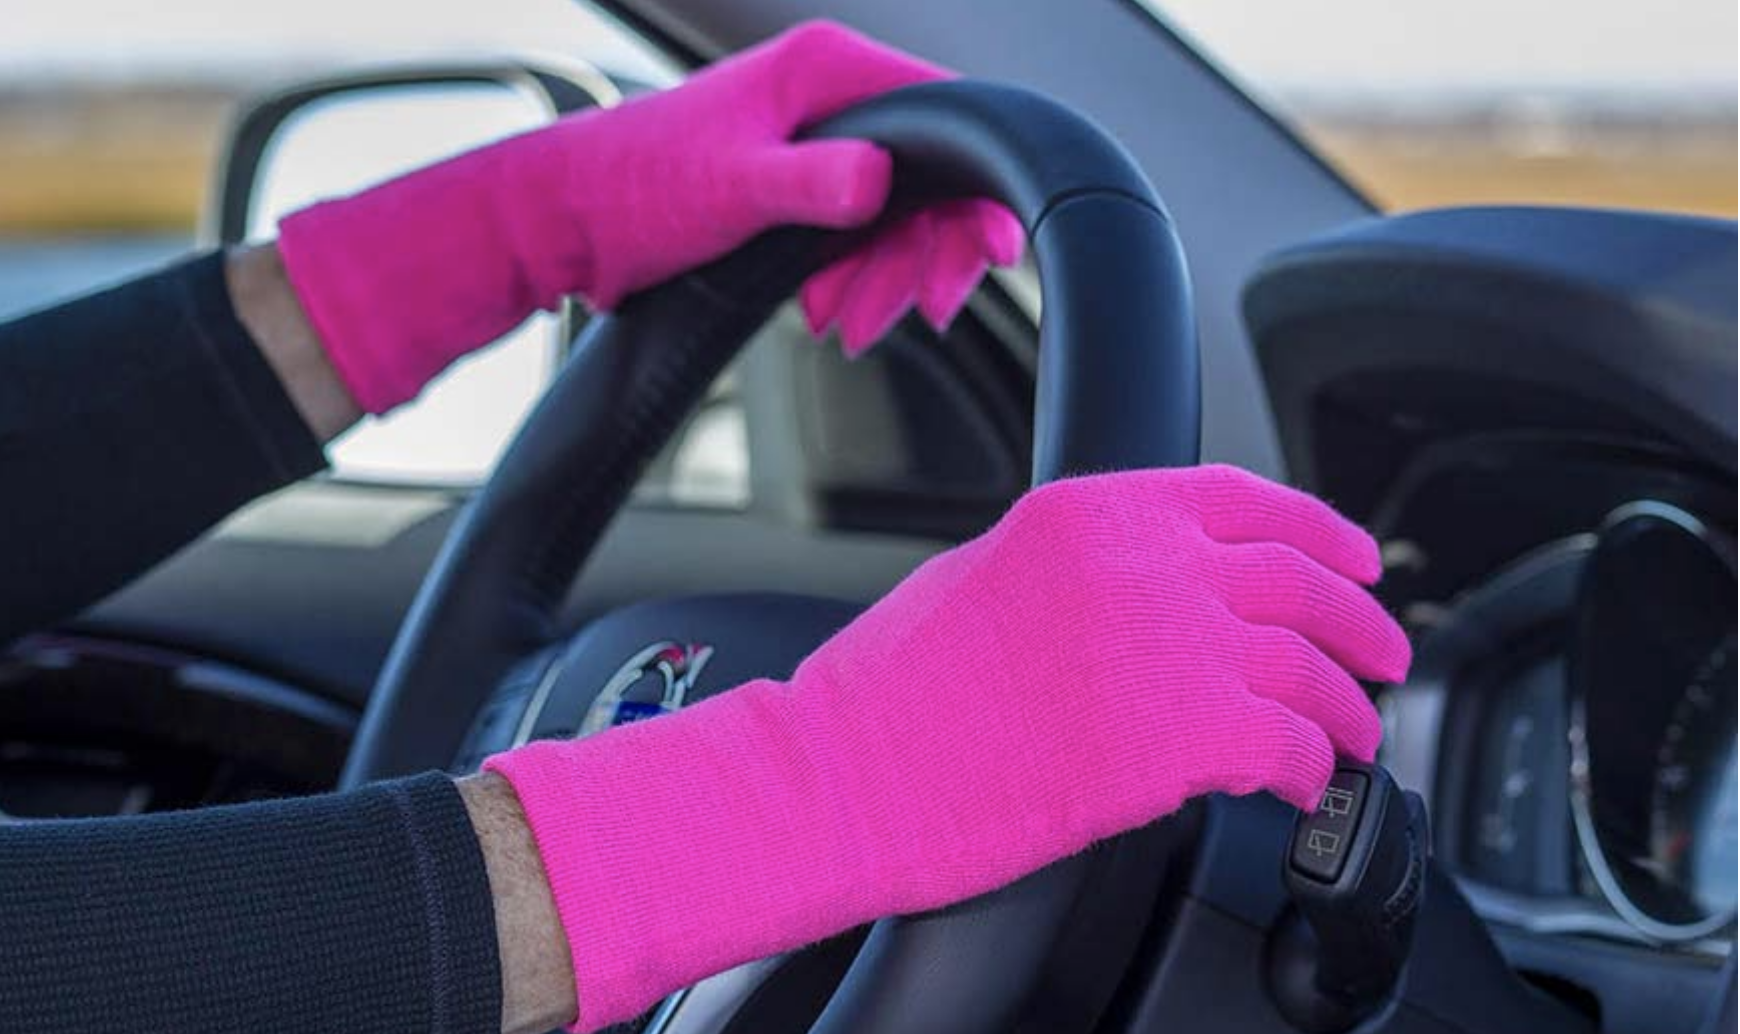 Limbkeepers Gloves for driving